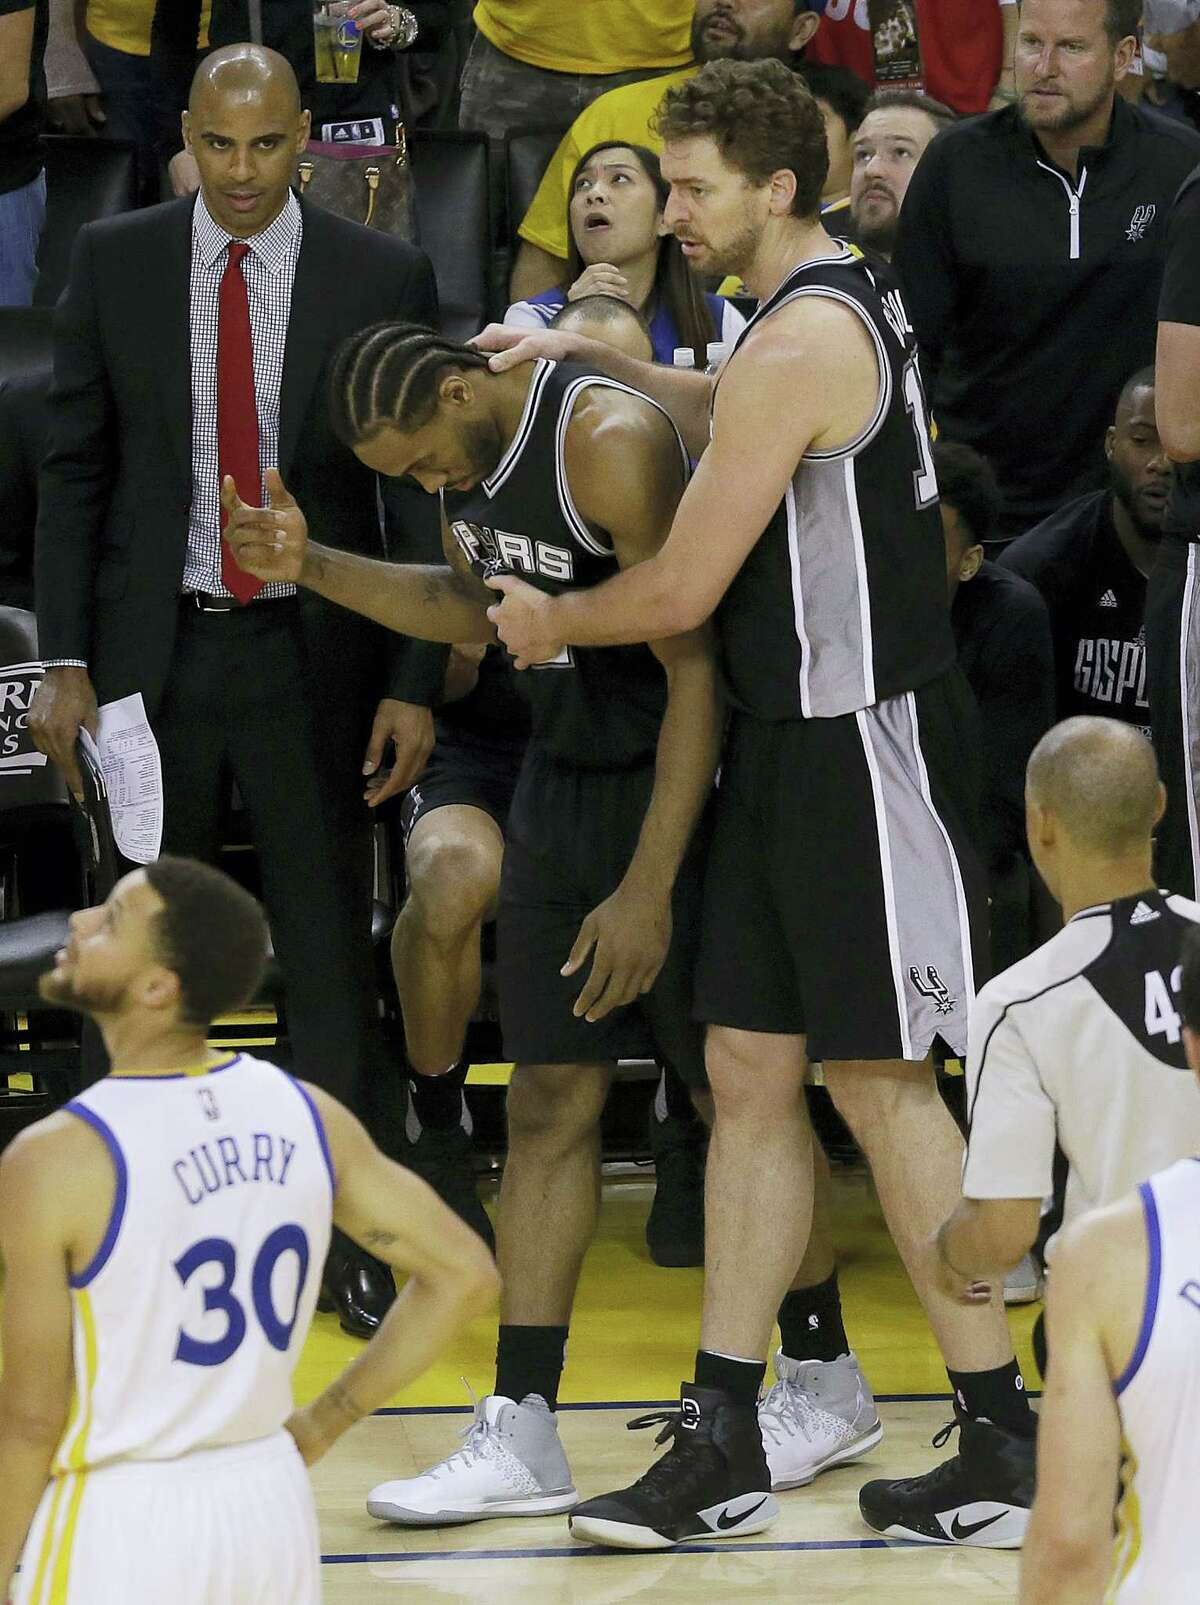 San Antonio Spurs forward Kawhi Leonard, center left, gestures next to center Pau Gasol during the second half of Game 1 of the NBA basketball Western Conference finals against the Golden State Warriors in Oakland, Calif. on May 14, 2017. The Warriors won 113-111.